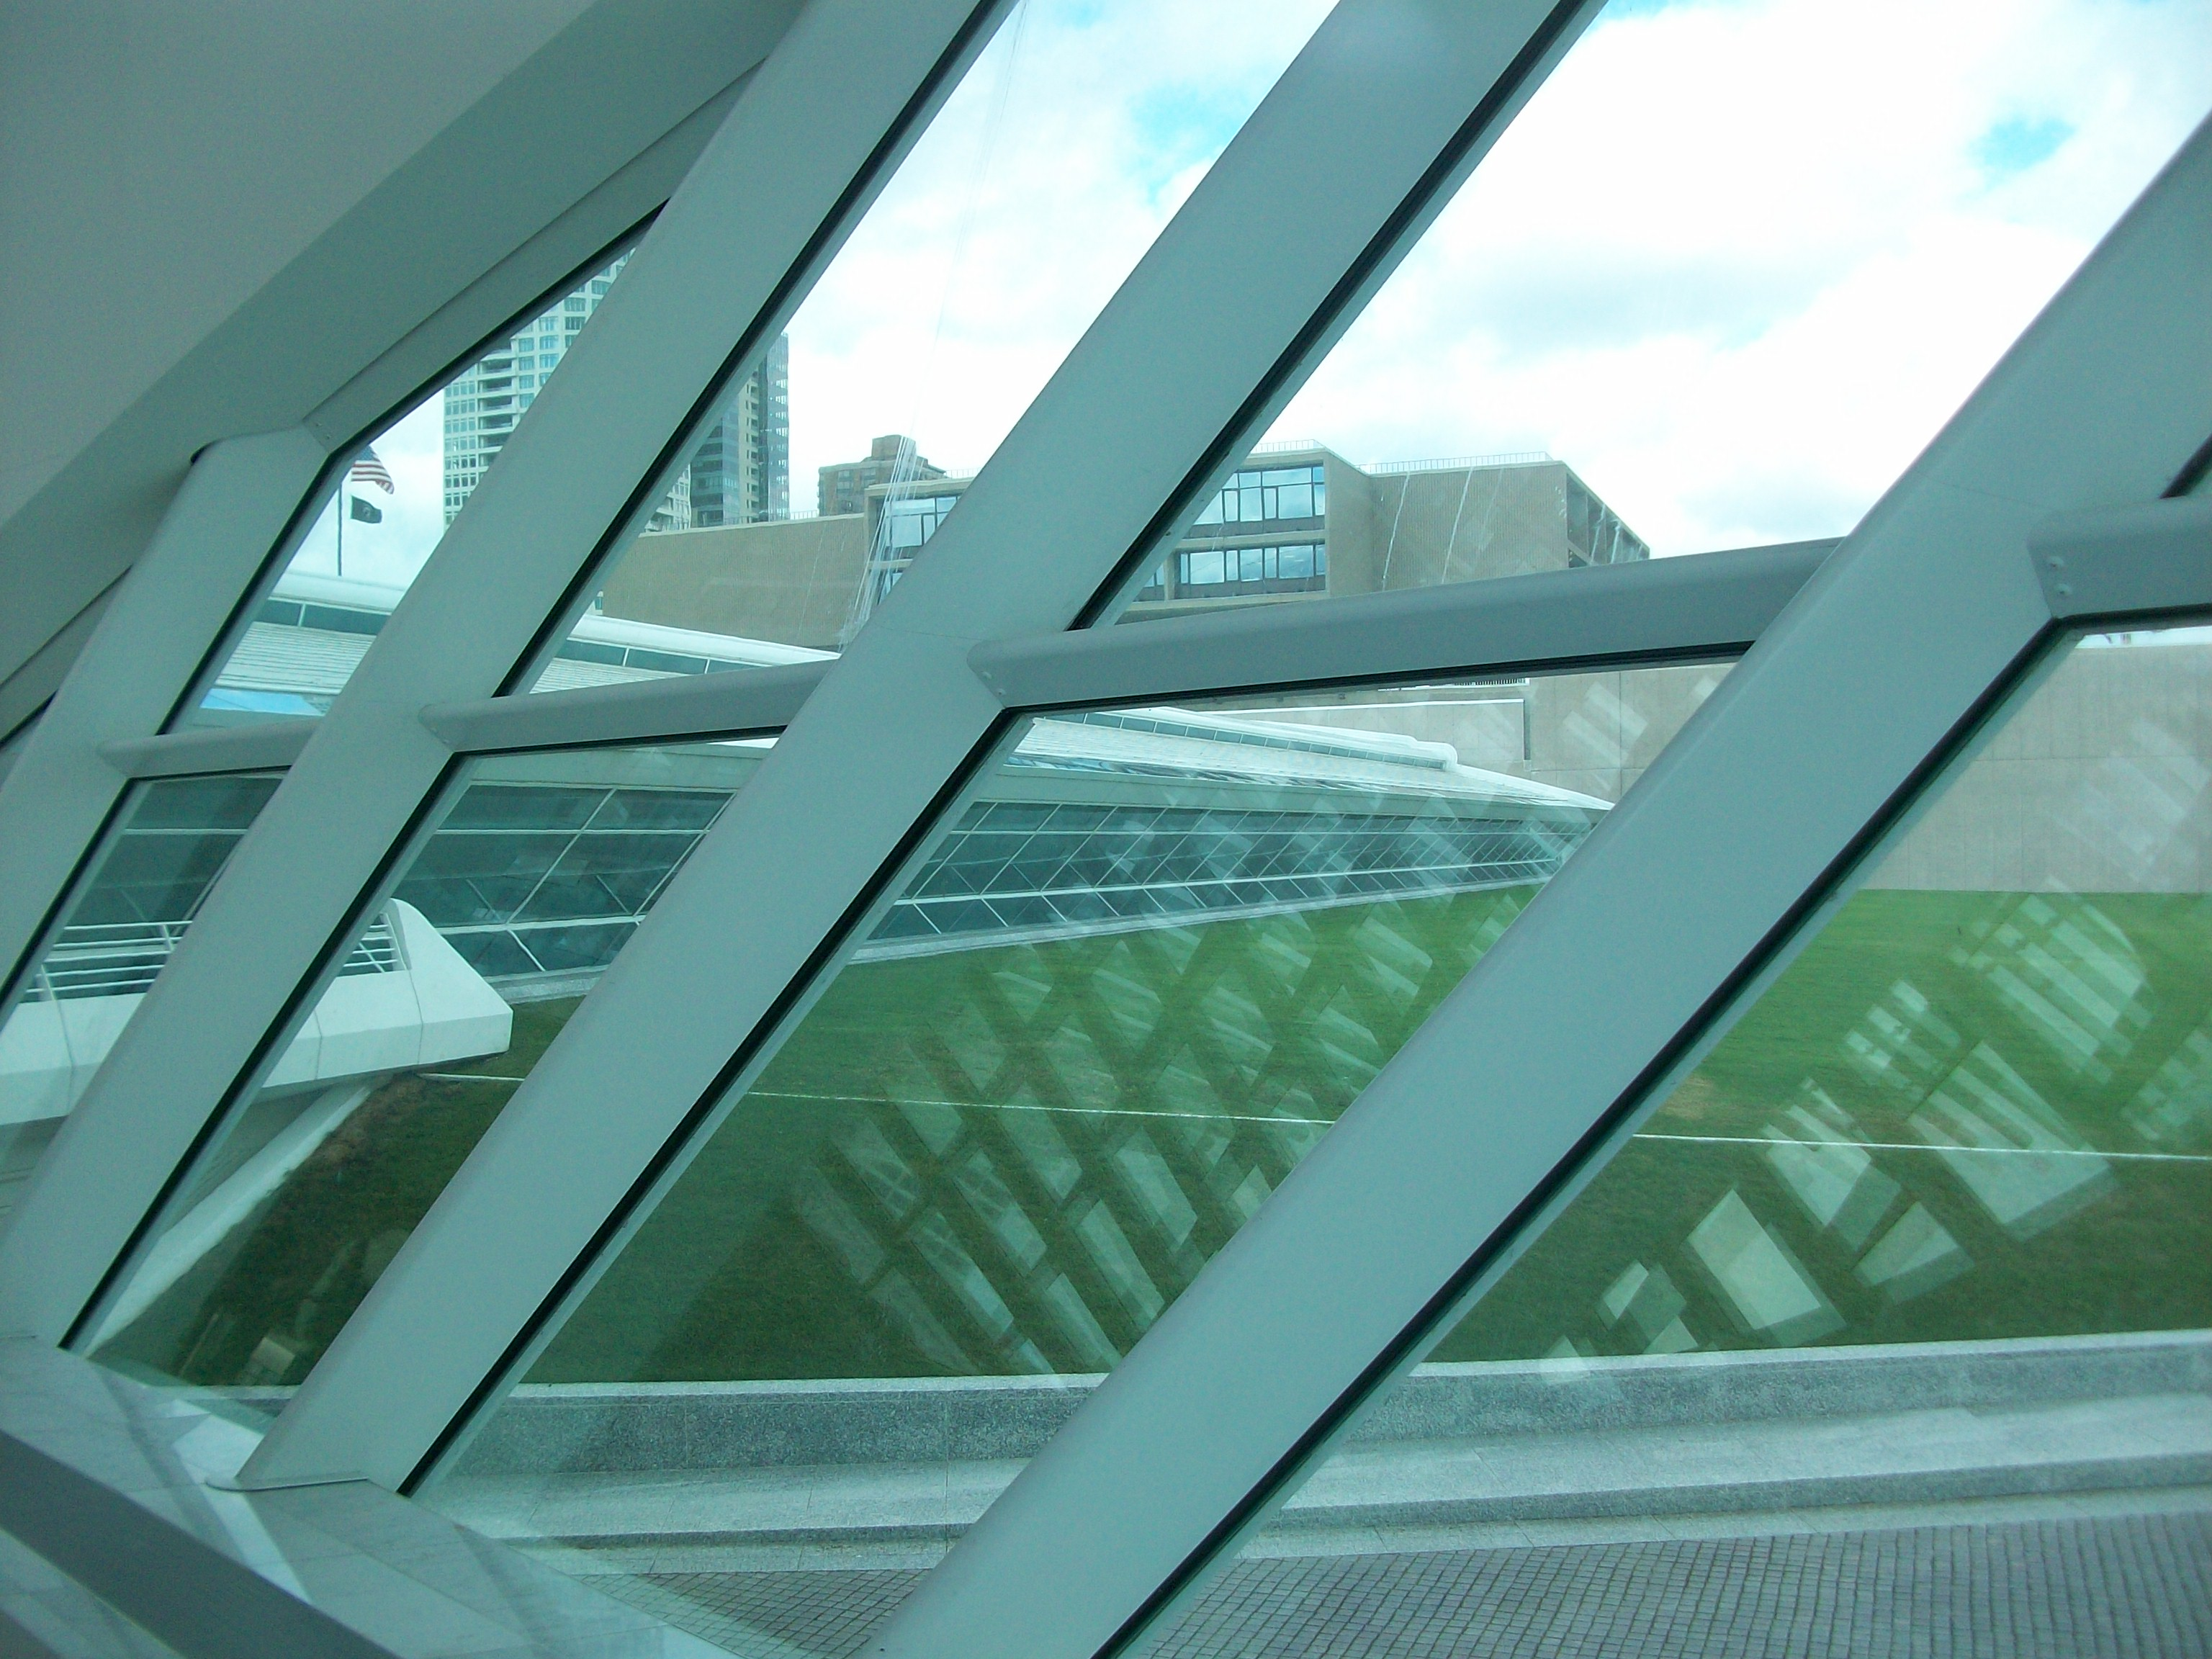 Calatrava's Milwaukee Art Museum View of the Wing from Inside